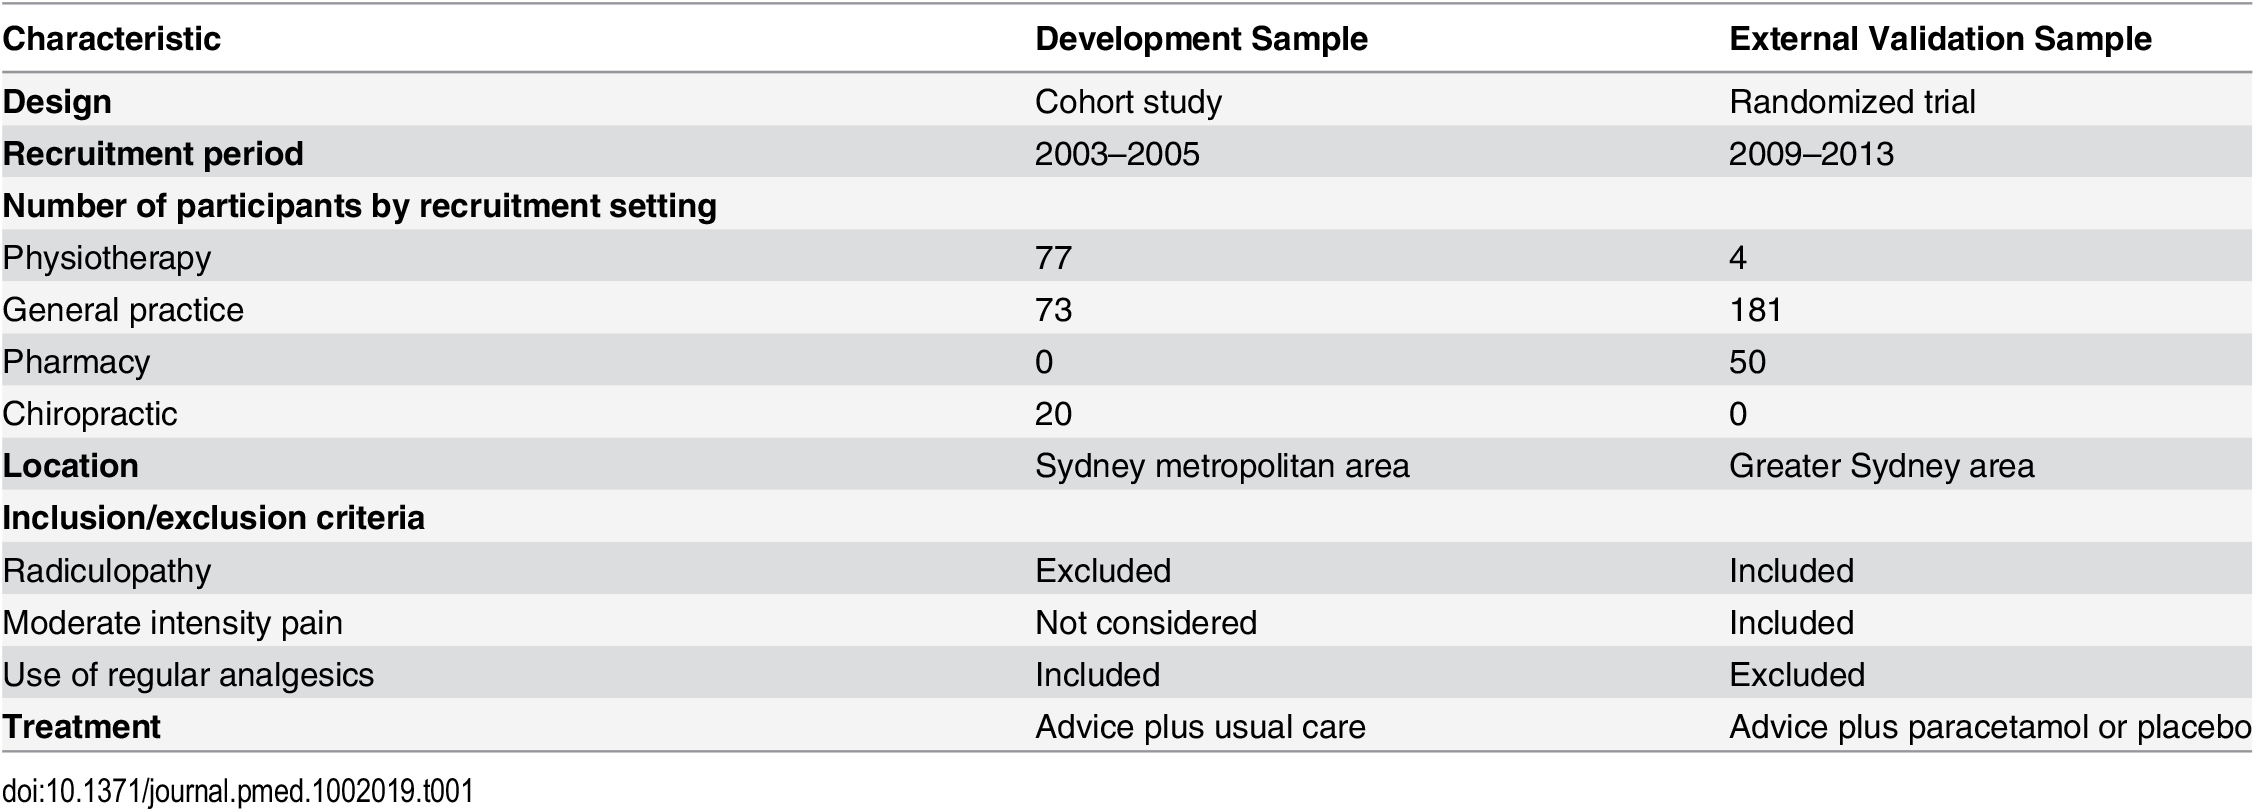 Key differences in the development and external validation studies.